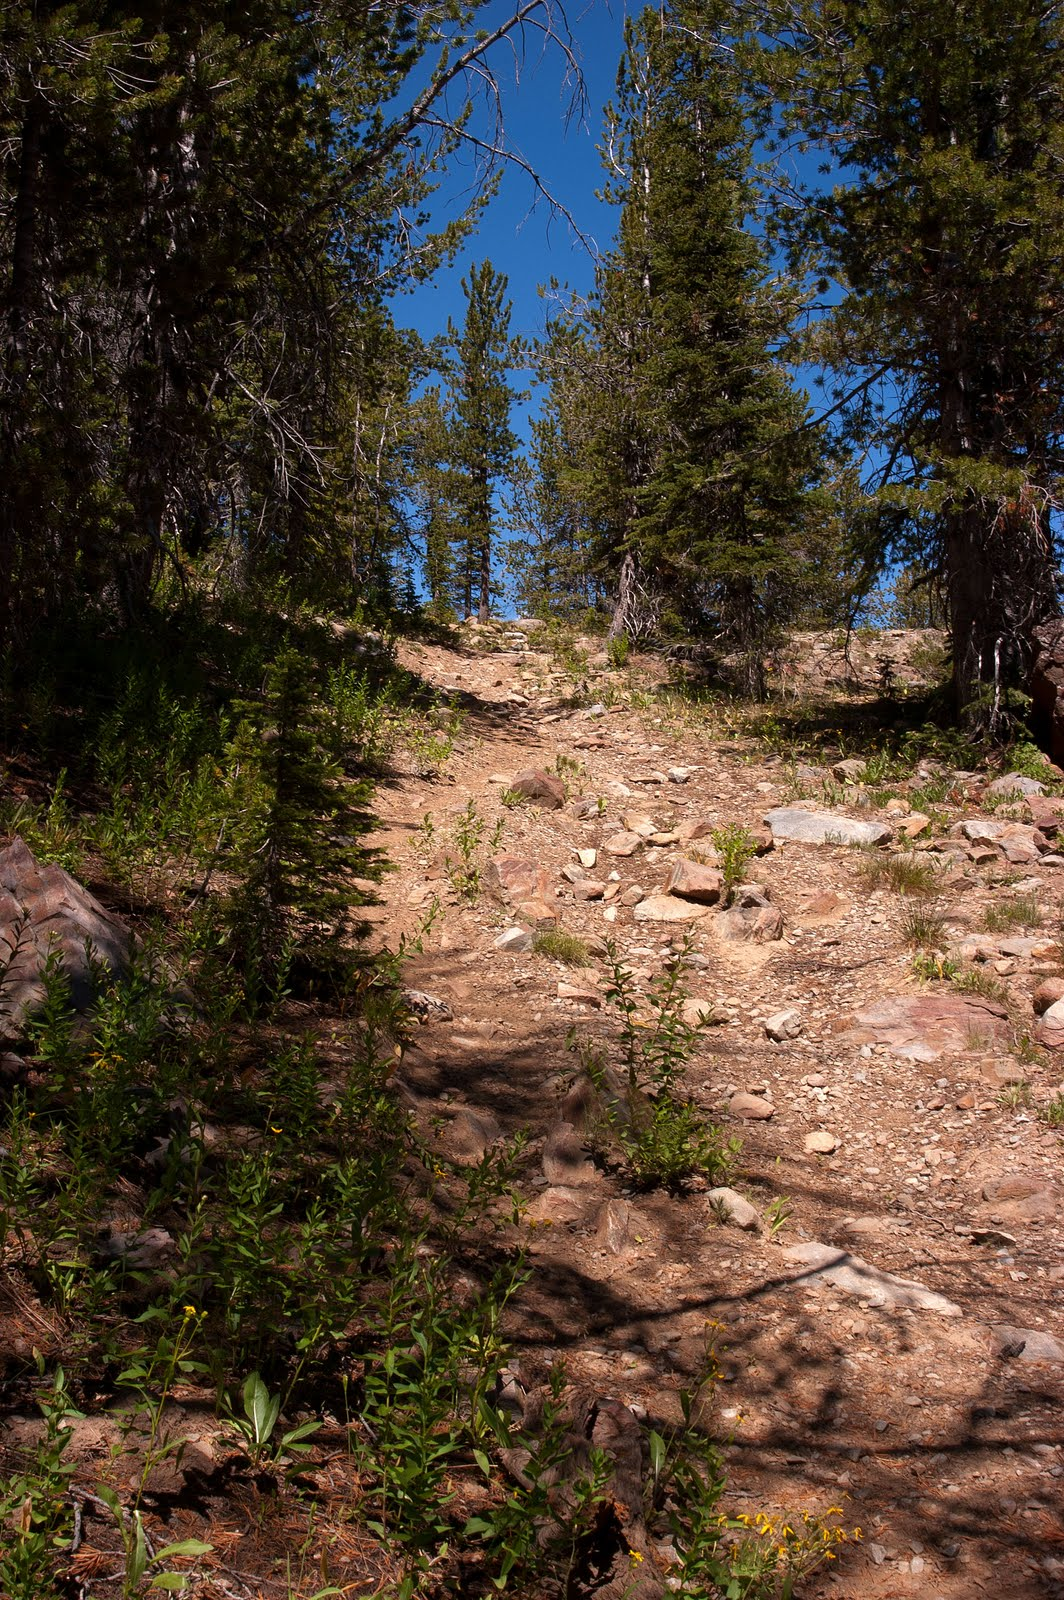 while the majority of the trail is nicely graded with a steady but not steep climb the last